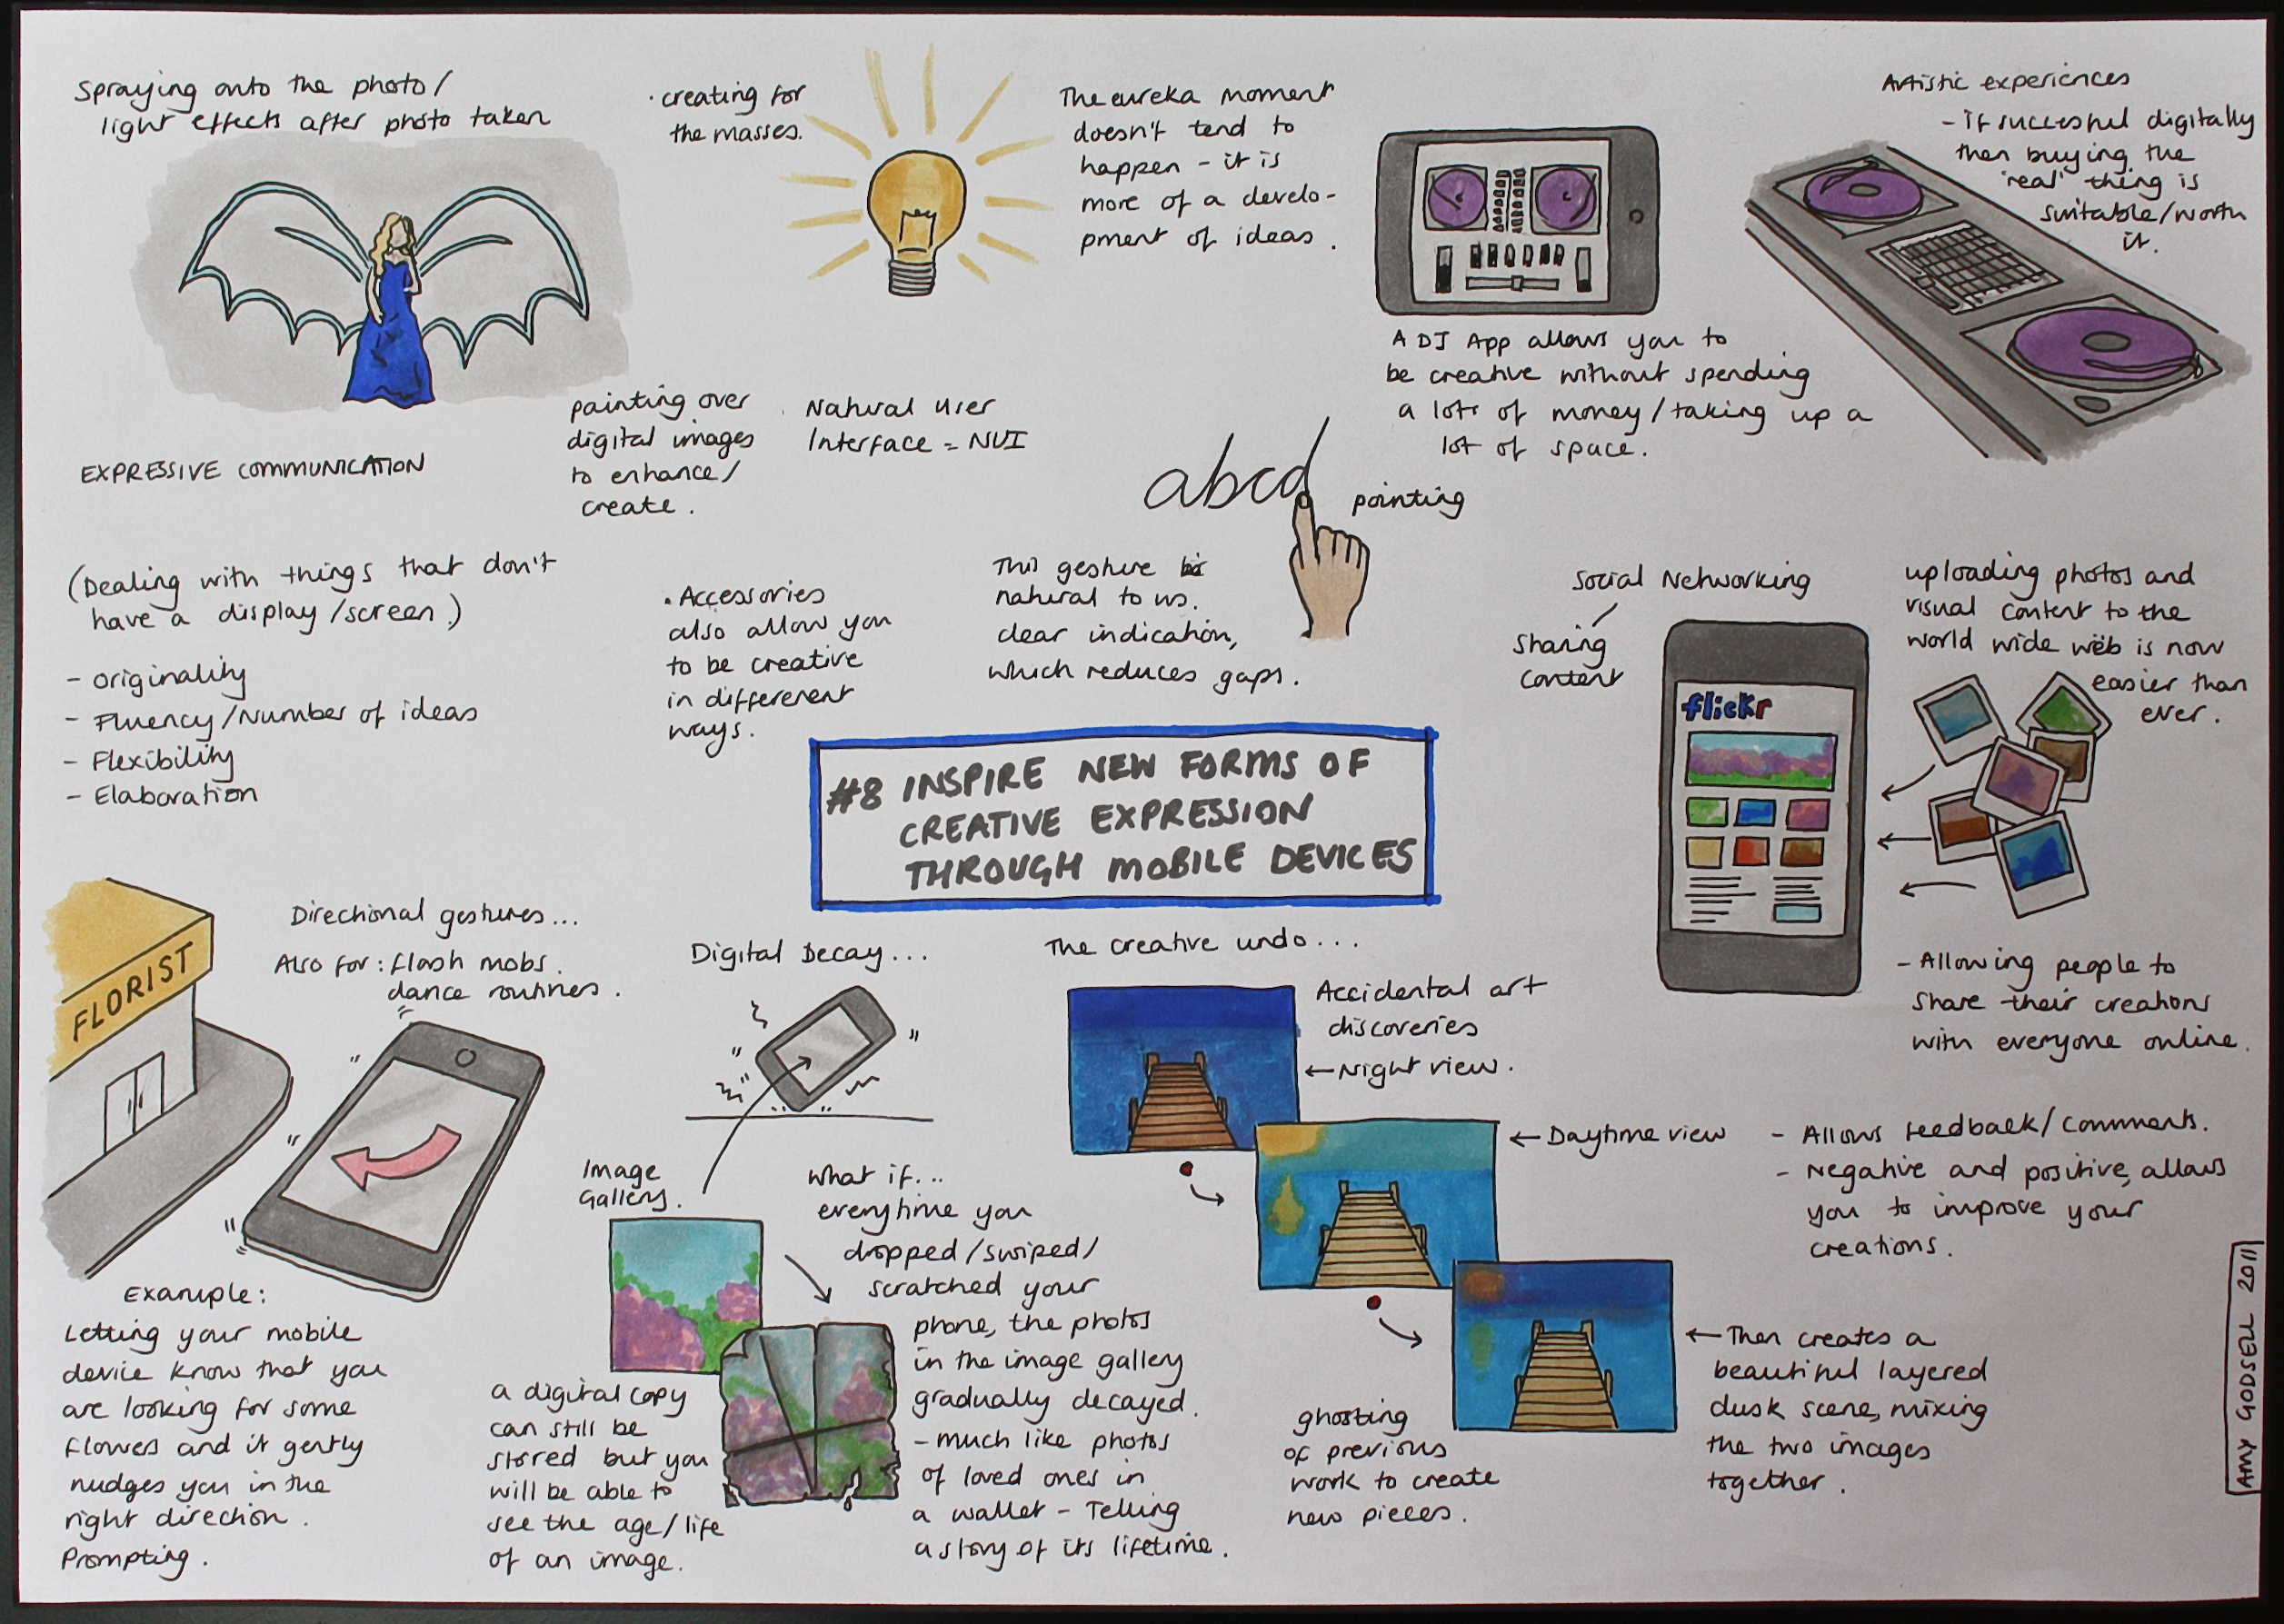 Visual summary of MEX Pathway #8: Inspiring new forms of creative expression through mobile devices (by Amy Godsell)